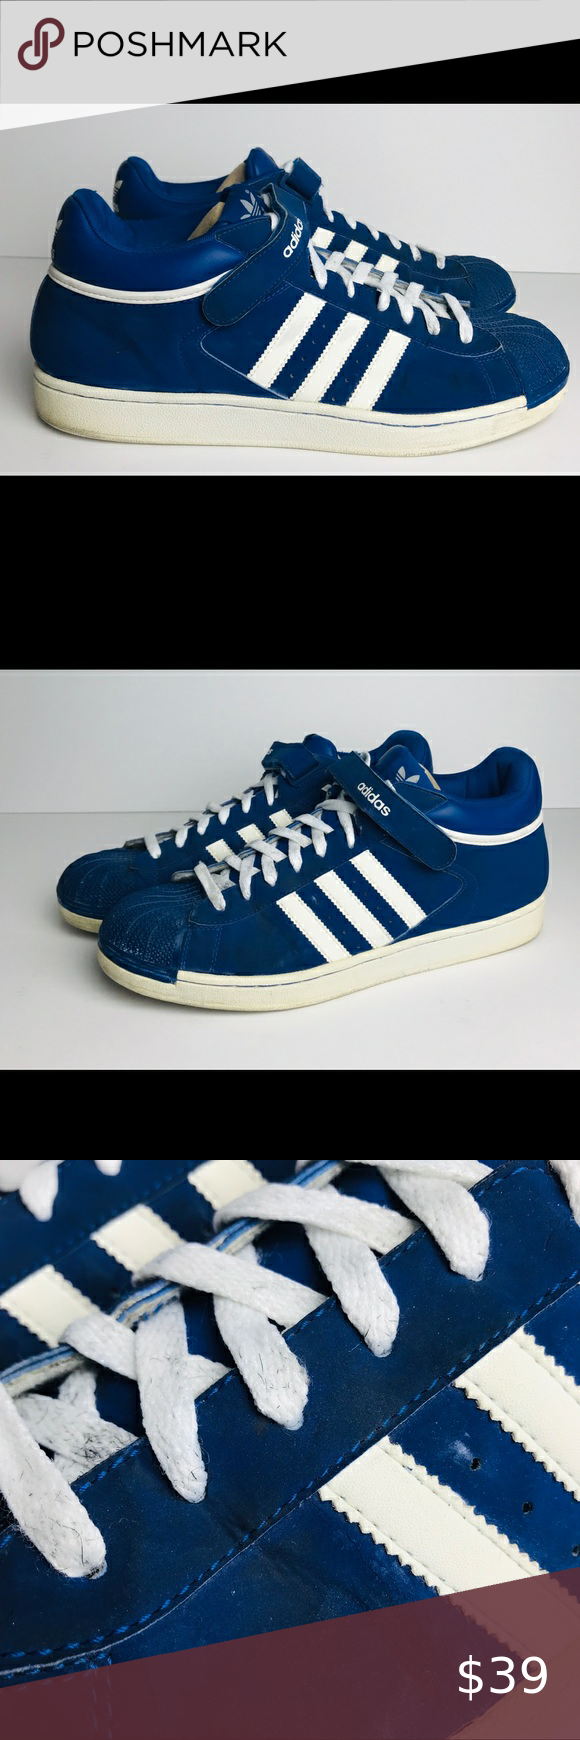 Adidas Blue And White Shoes Men's Size 13 G07654 | White shoes men ...